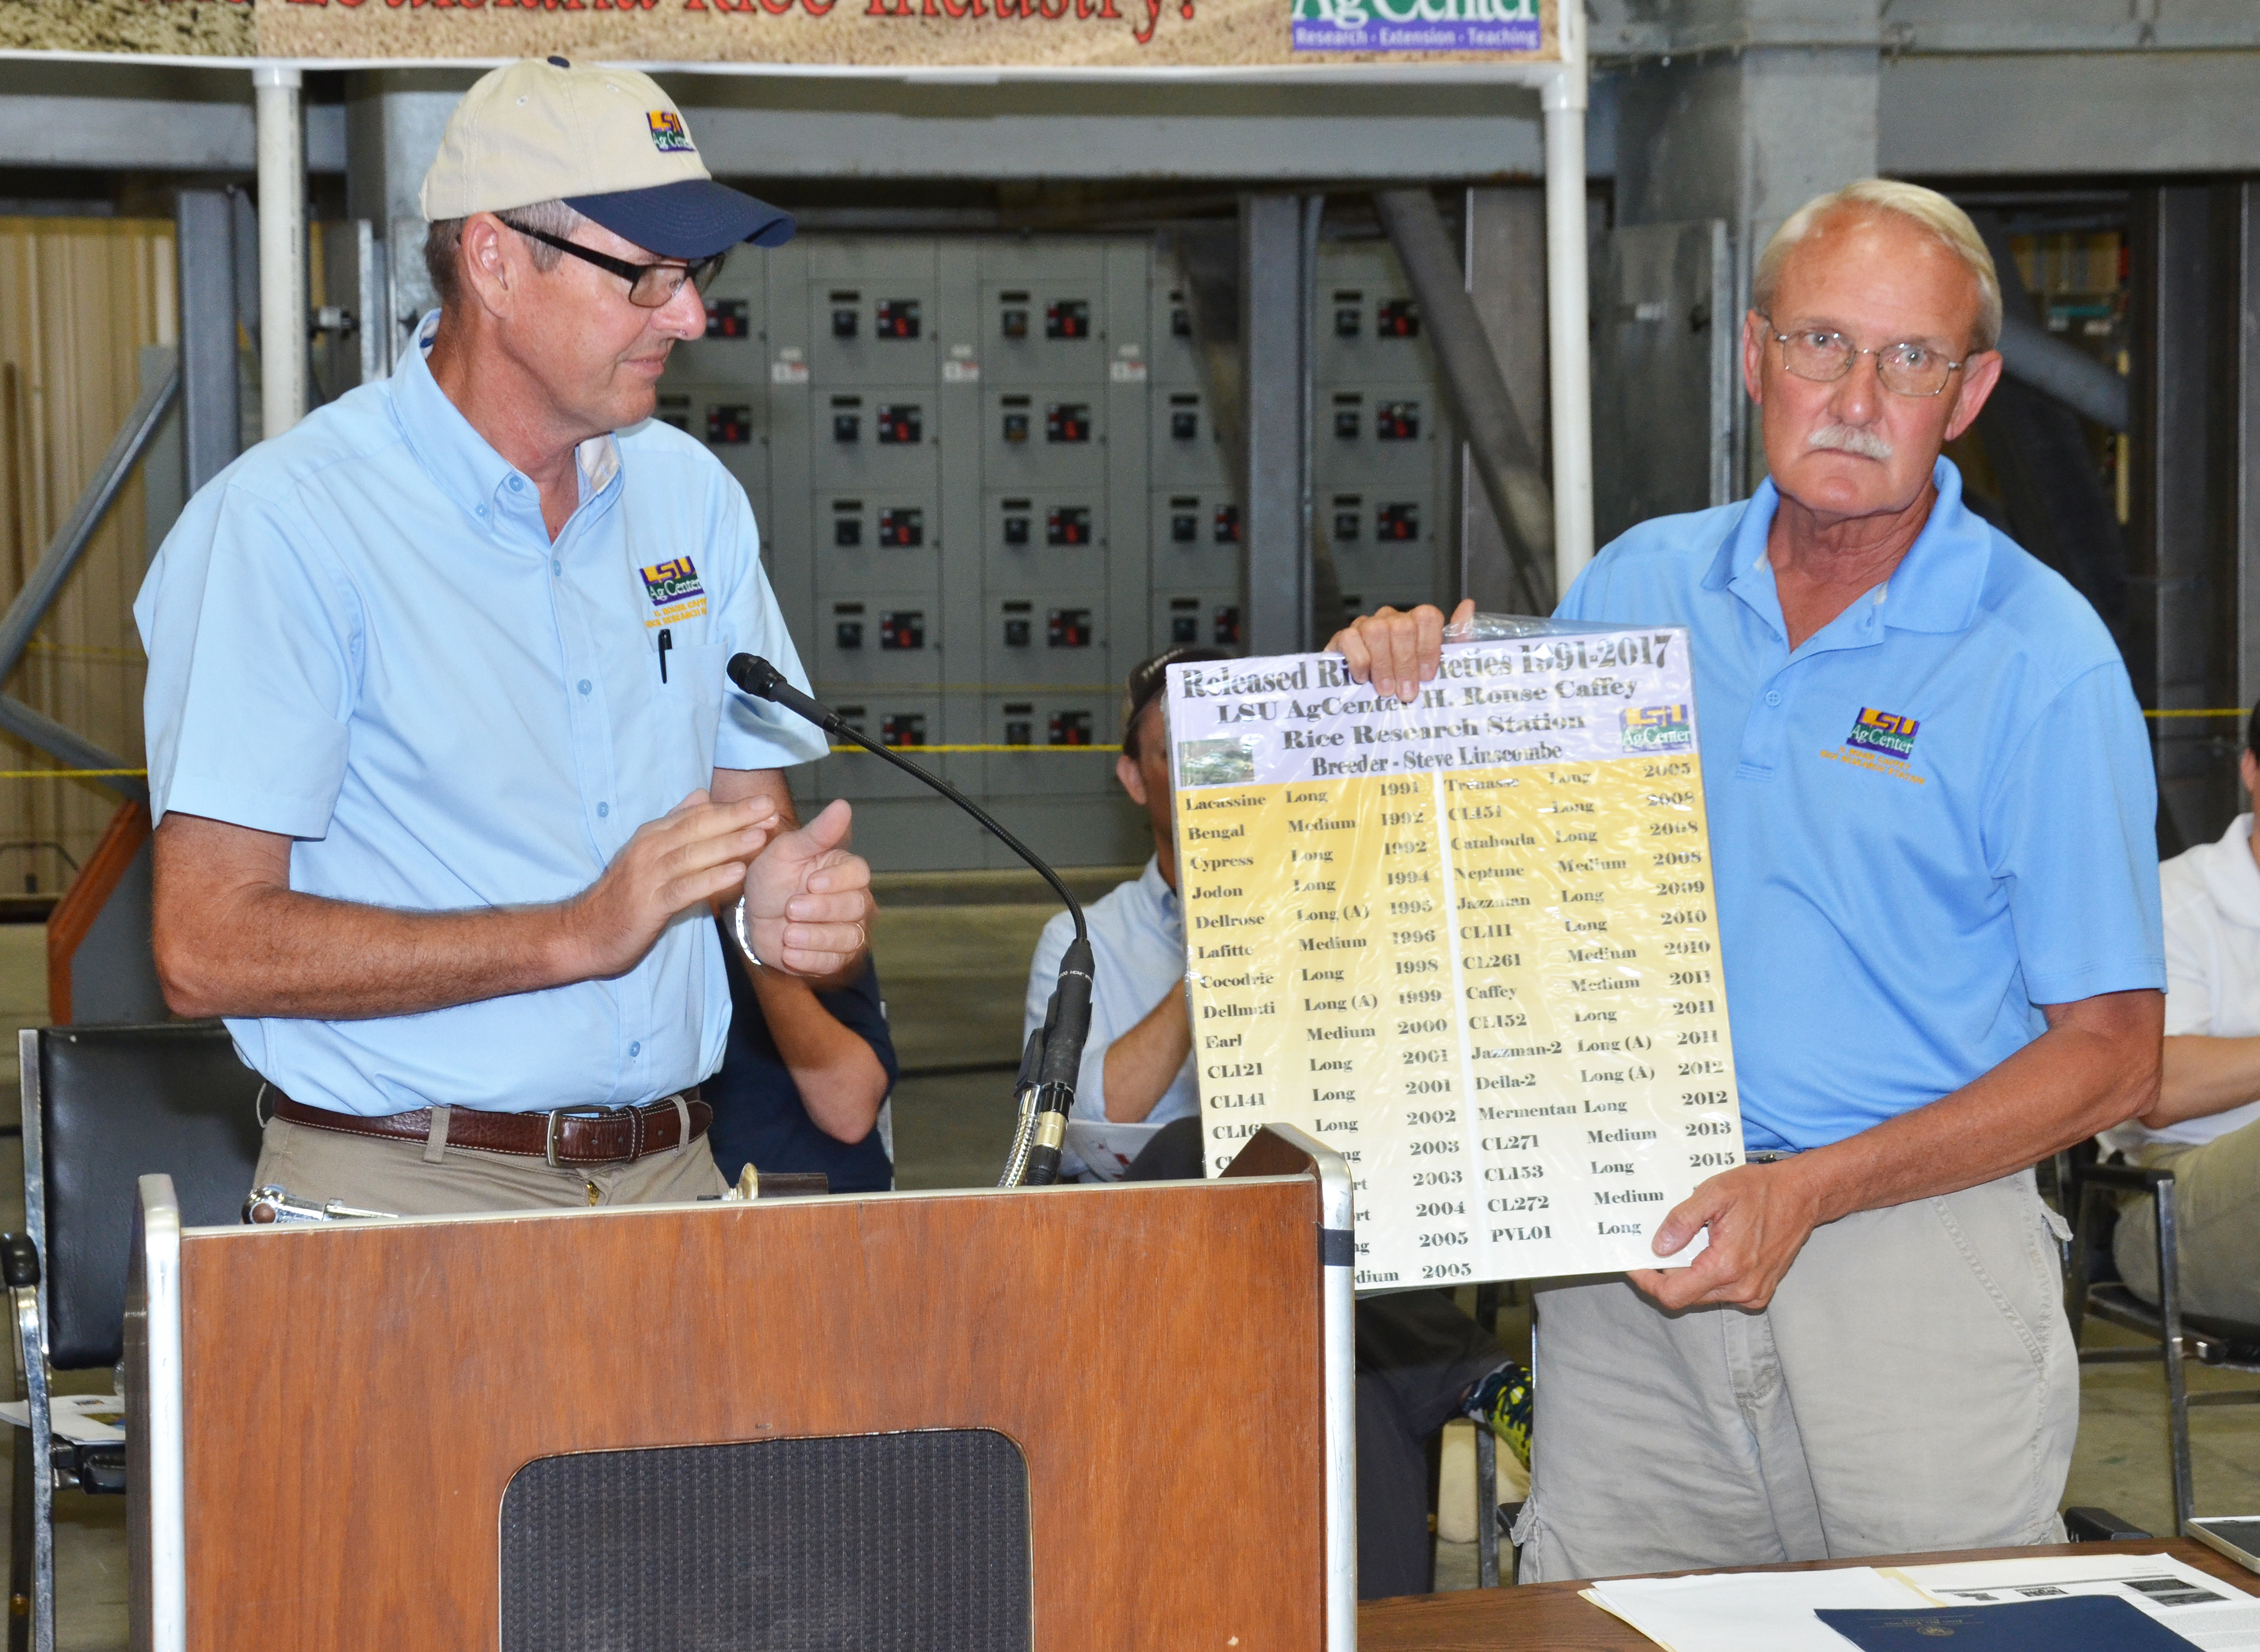 AgCenter rice breeder announces retirement